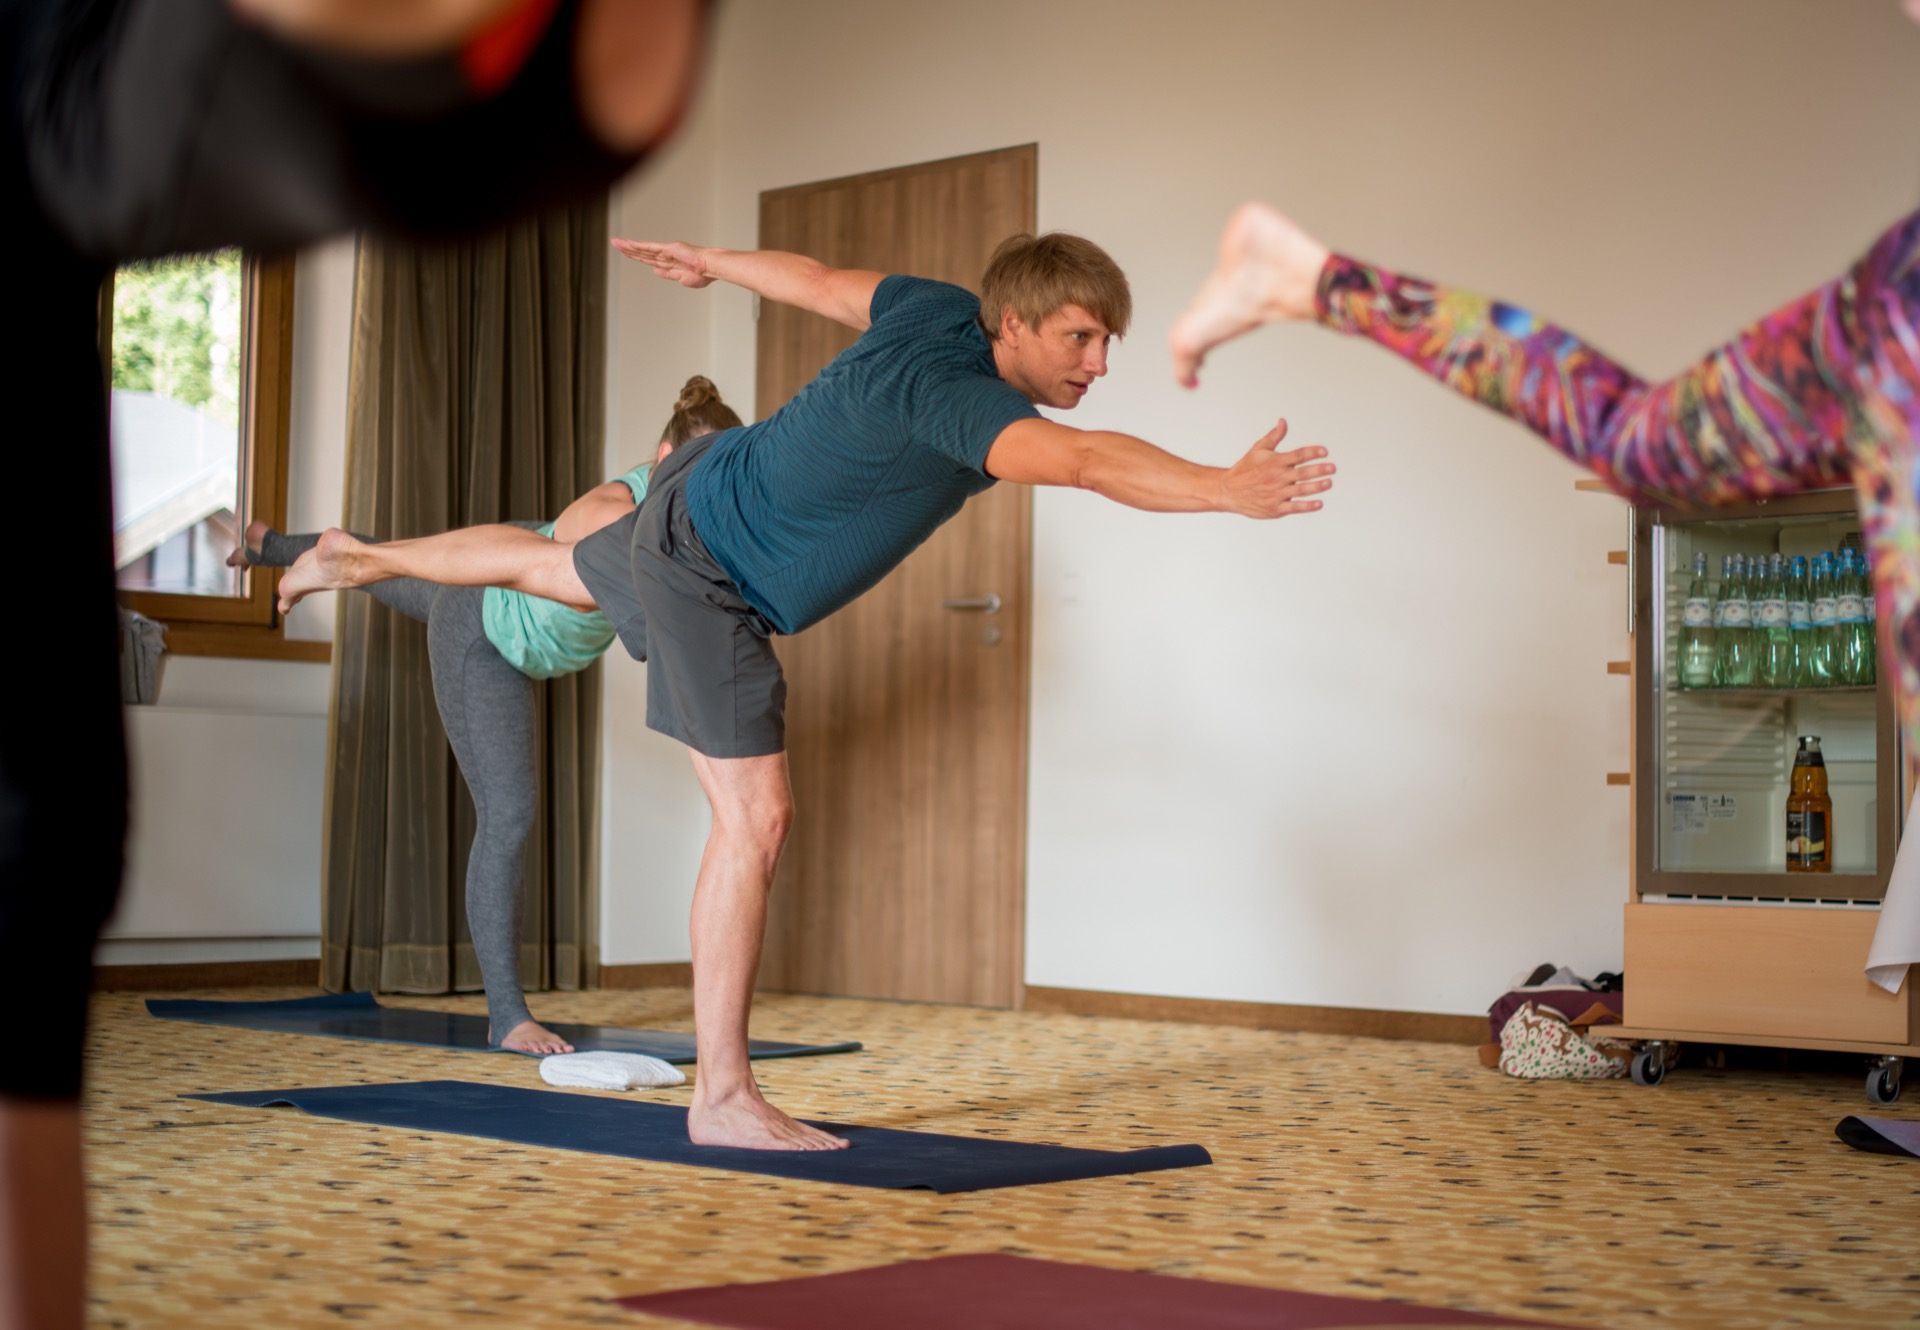 Hie-Kim-Friends-2019-Yoga-Retreat-Alina-Matis-Photography-031 - Hie Kim Yoga - Yoga Retreat - Yoga Workshops und Reisen